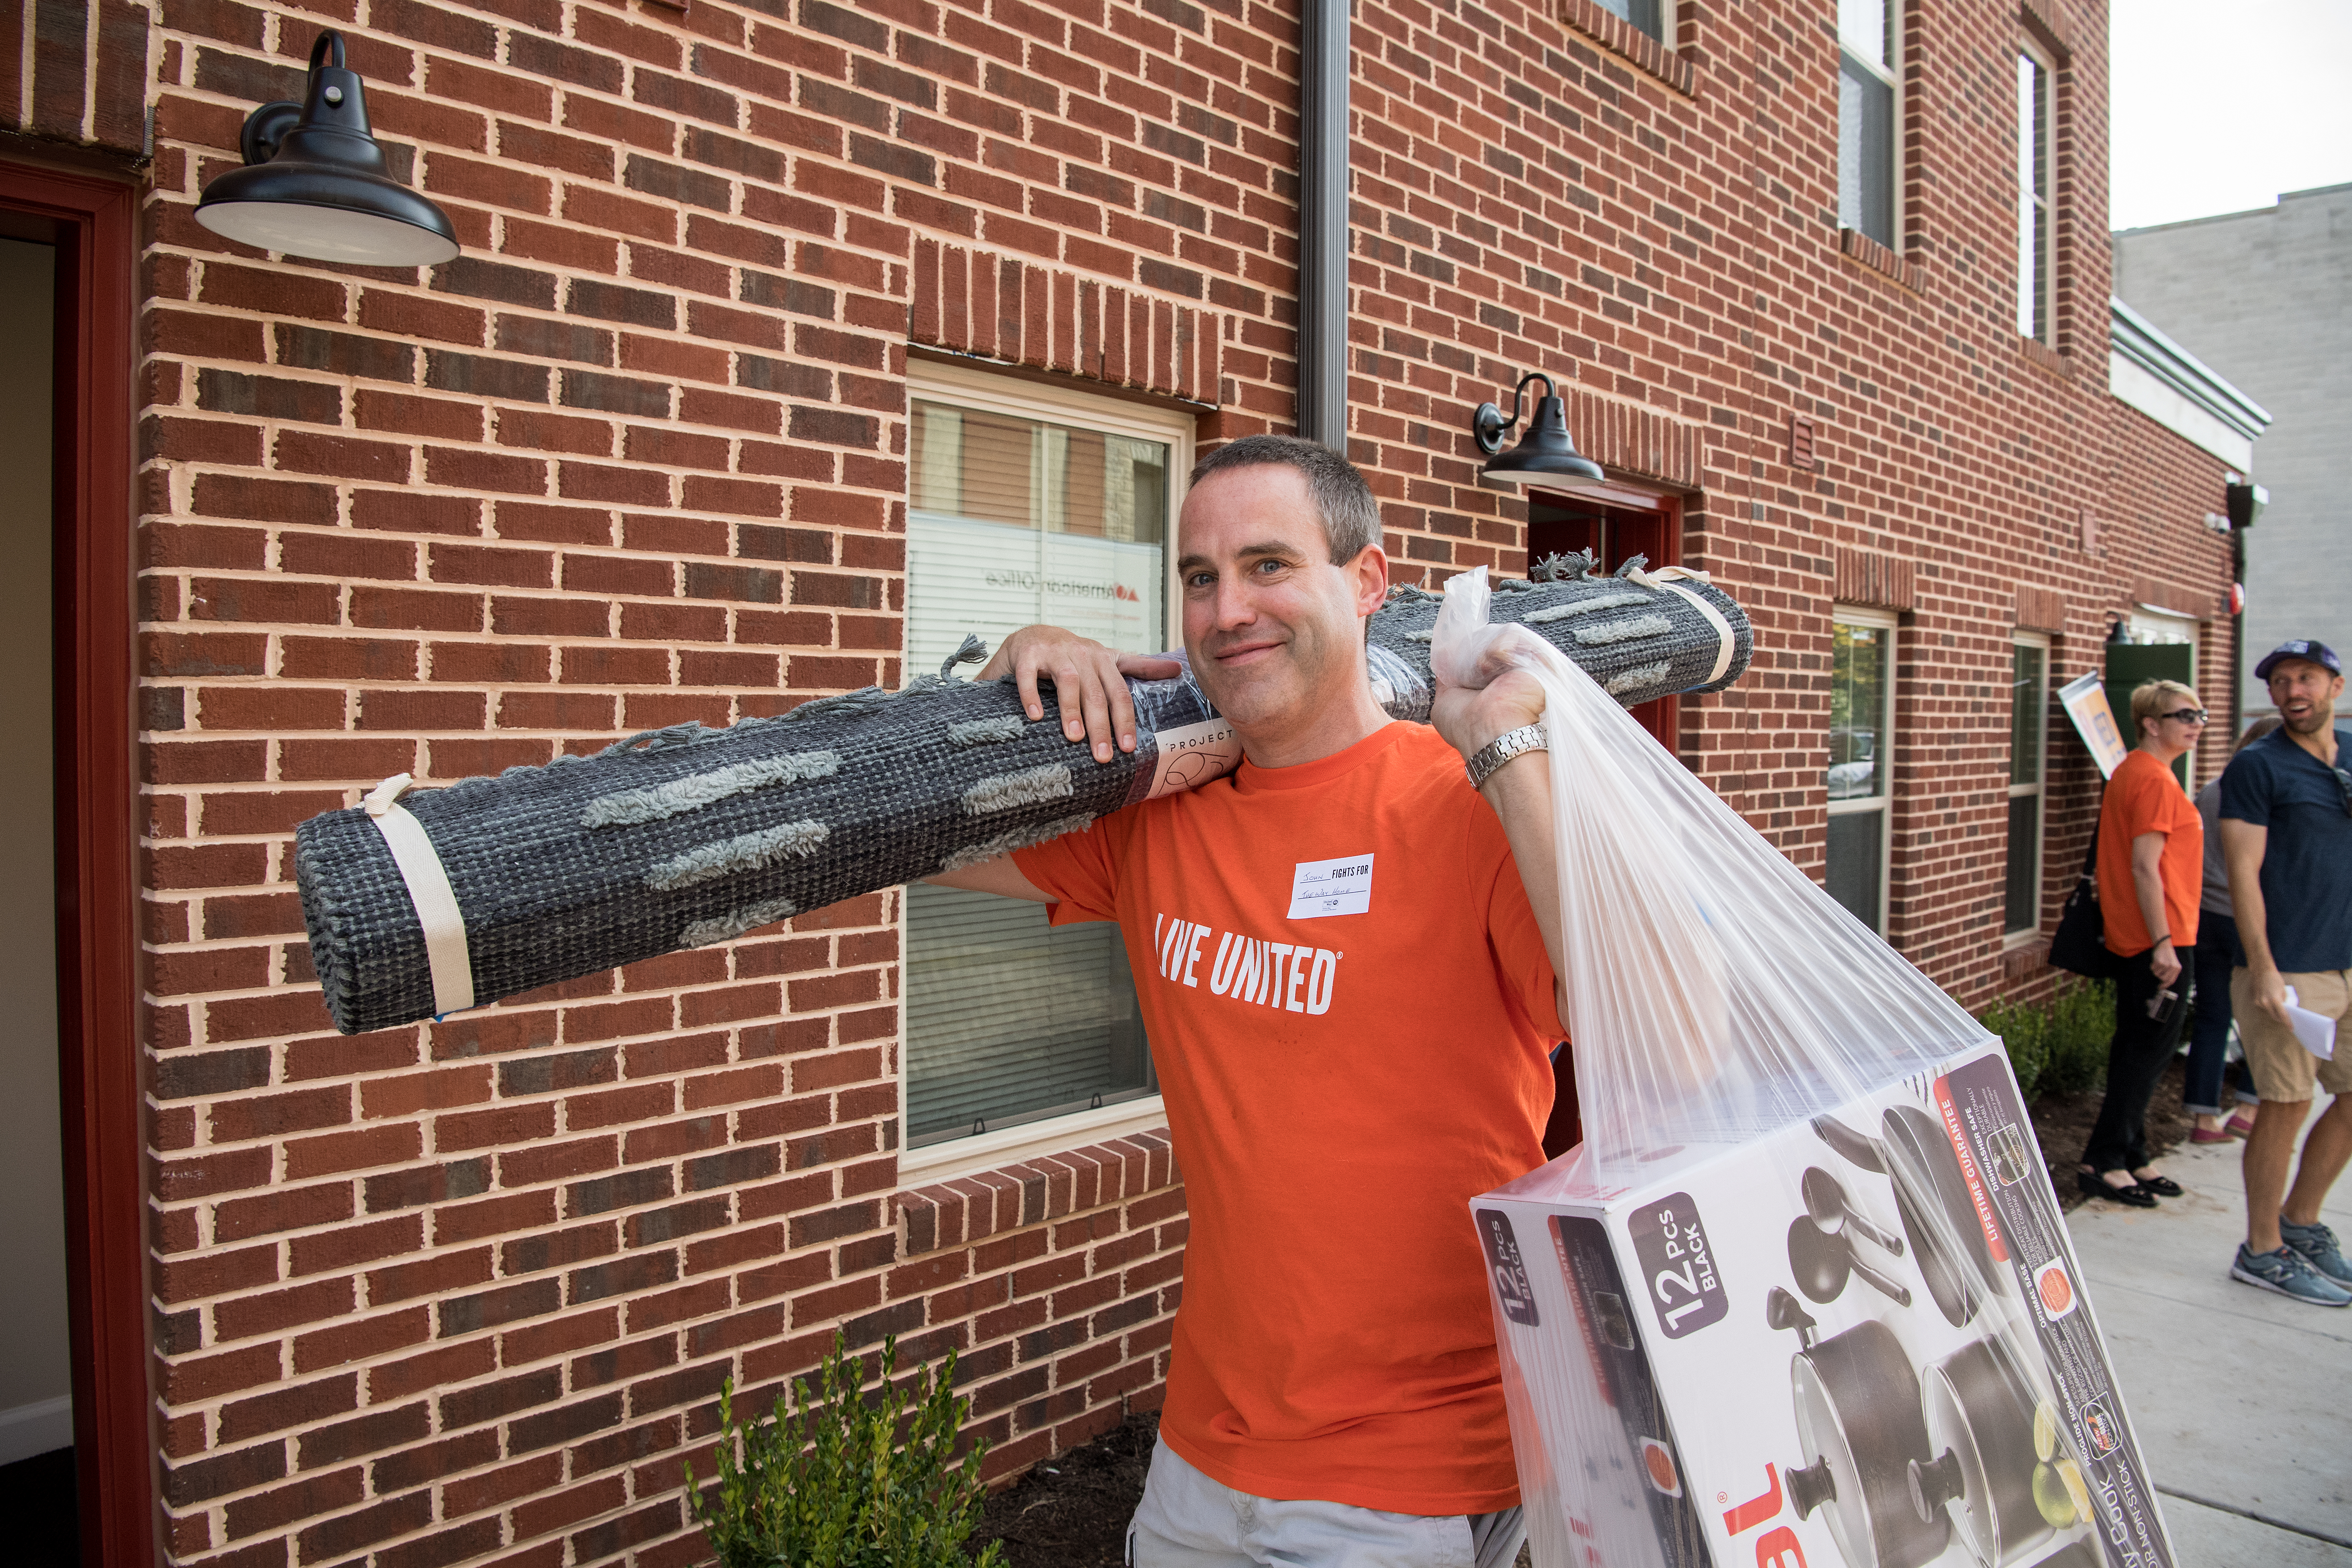 A Leaders United member in his Live United shirt carries household items to be installed in one of the Way Home project homes.